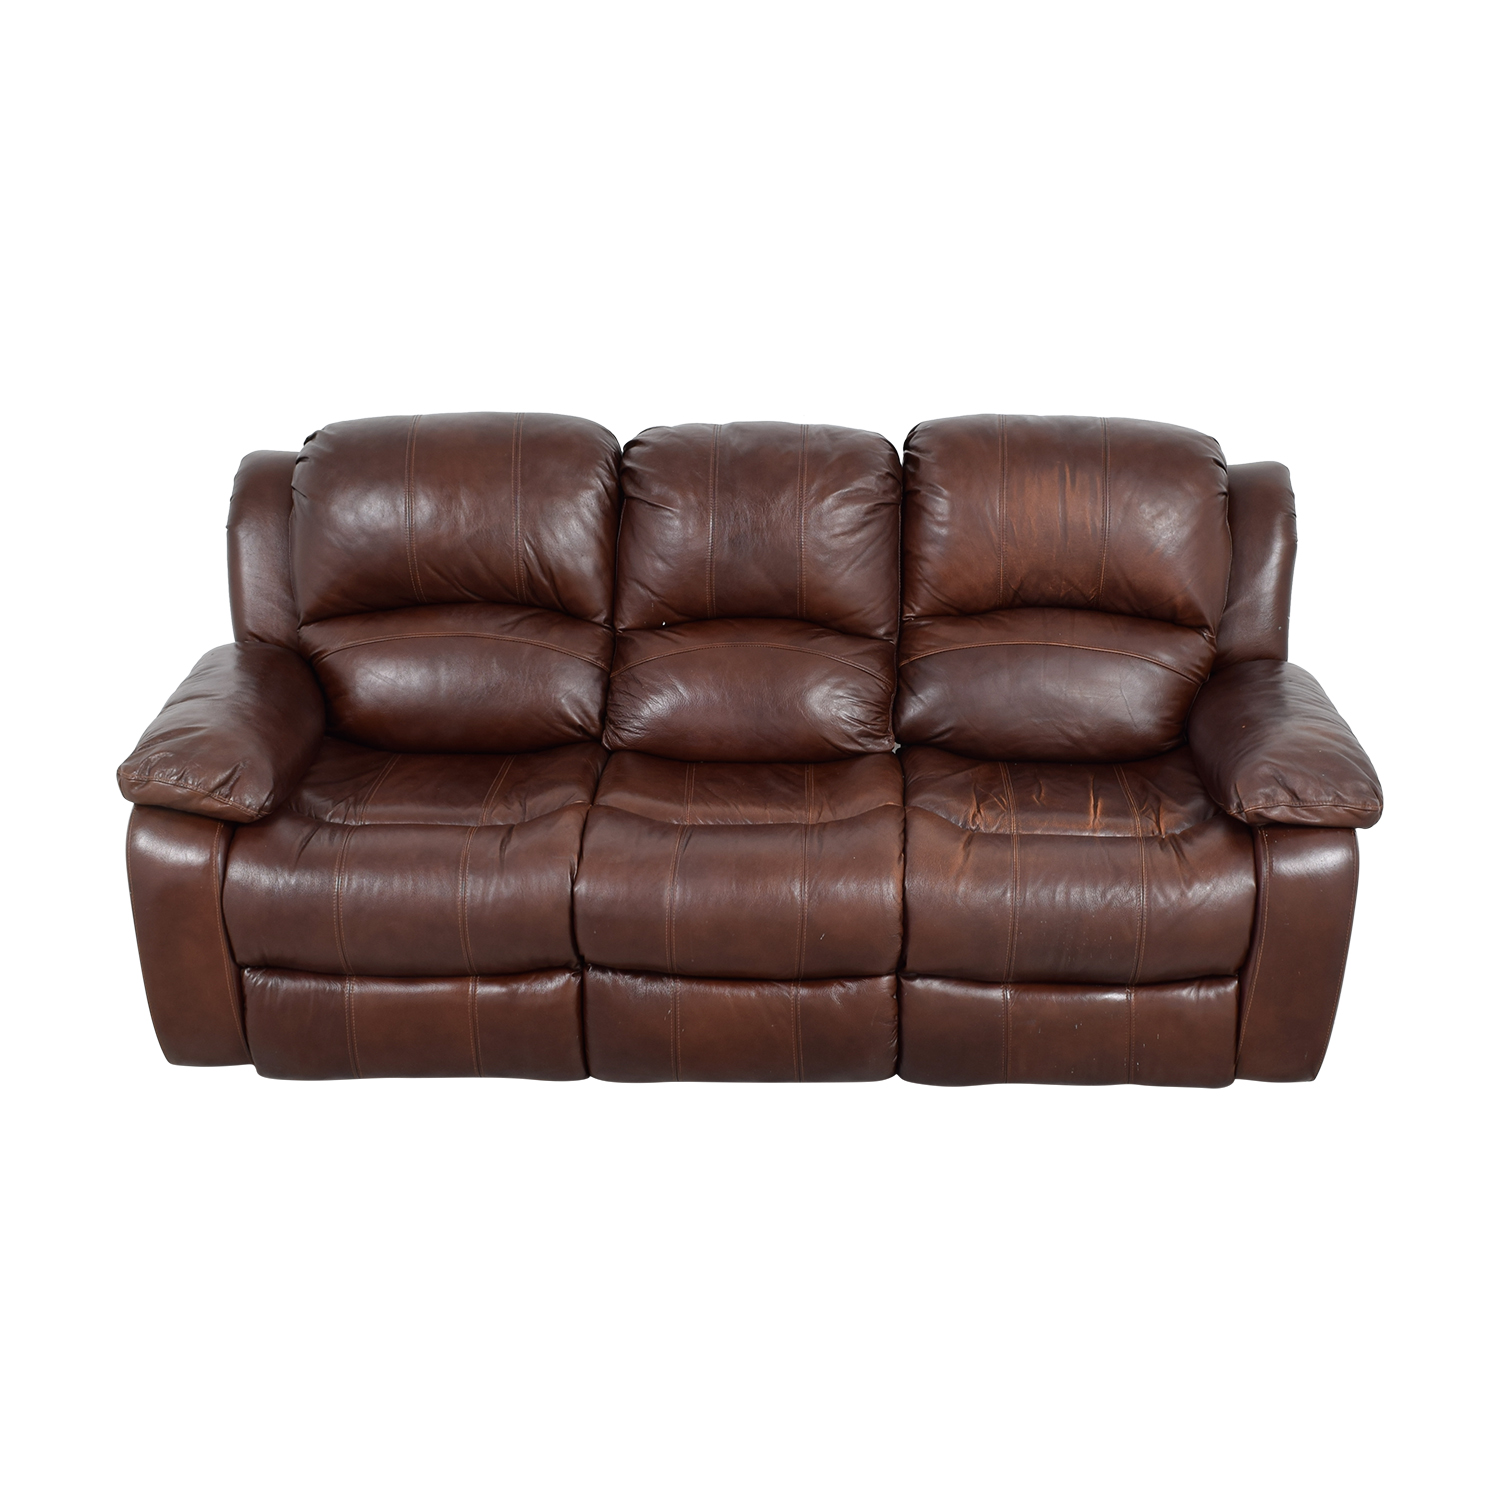 Raymour and Flanigan Raymour and Flanigan Brown Leather Reclining Sofa price